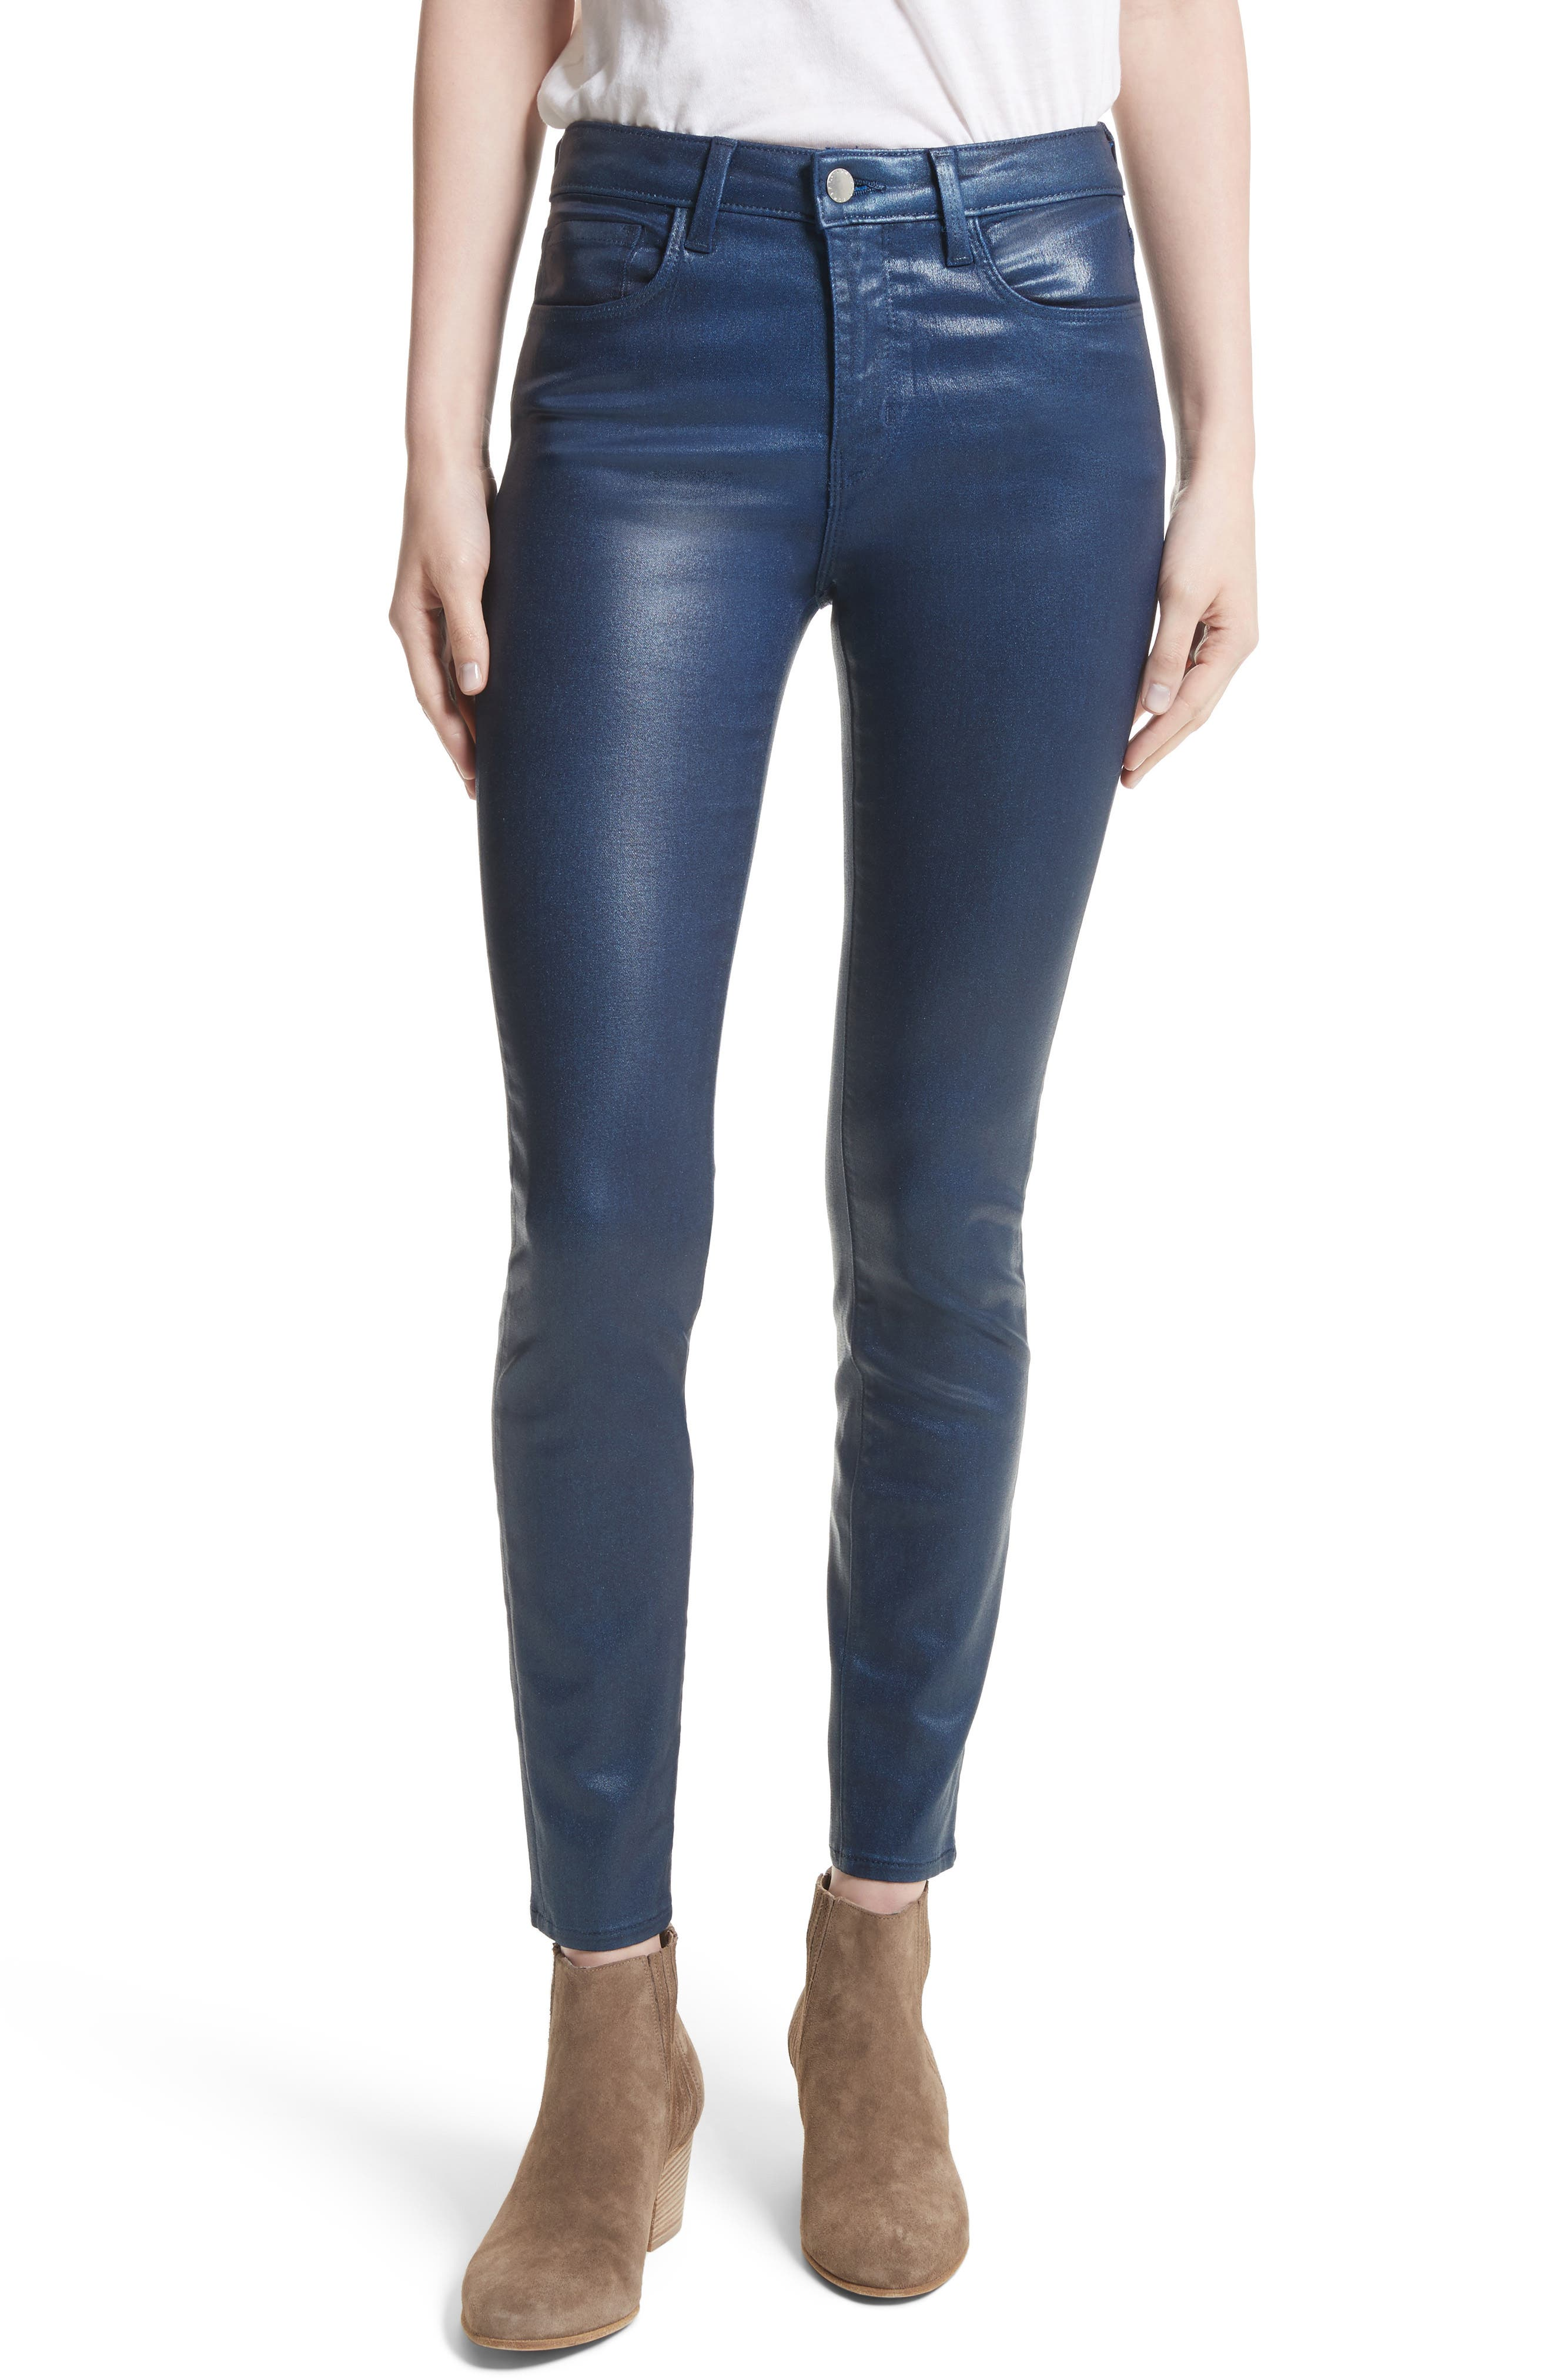 L'AGENCE Coated High Waist Skinny Jeans